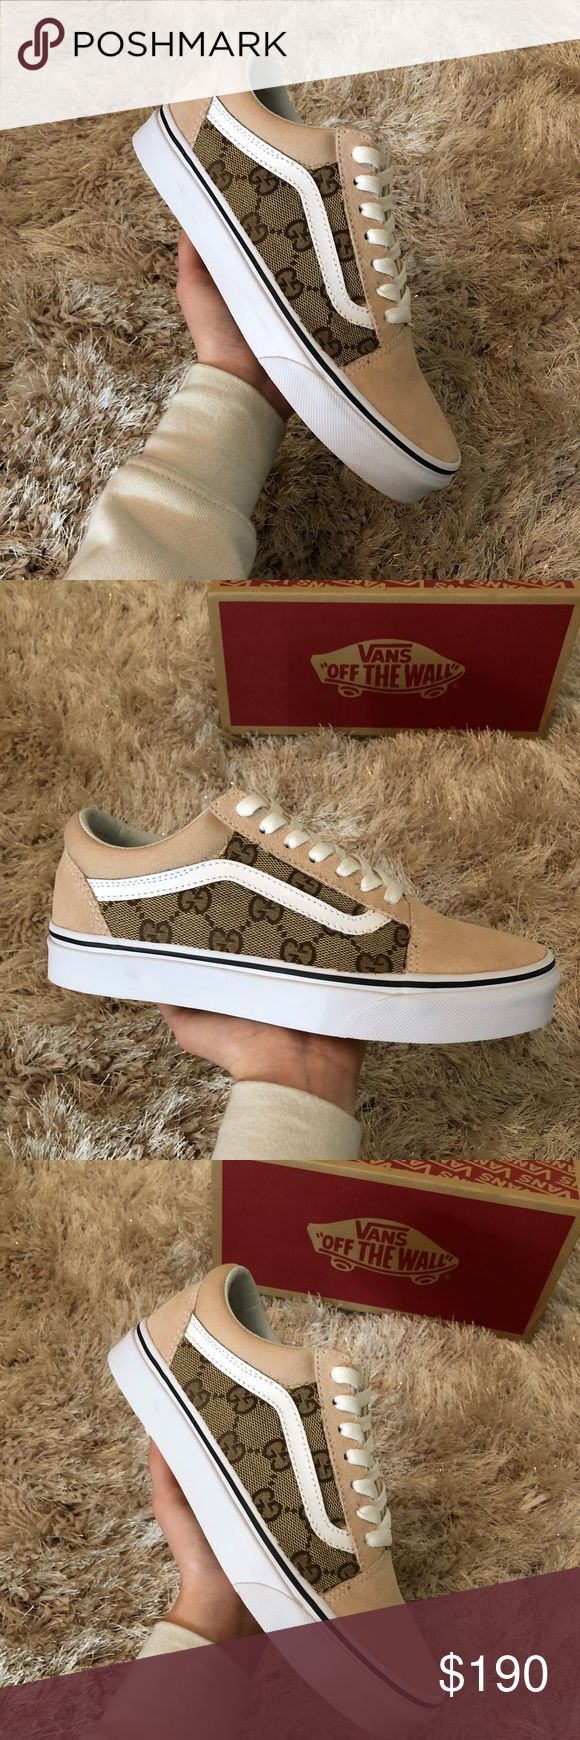 Old Skool Vans in the color frappe 100% Authentic and brand new with tags  Customized with Gucci fabric  Gucci fabric is located on the outsides of each shoe.  All sizes available Vans Shoes